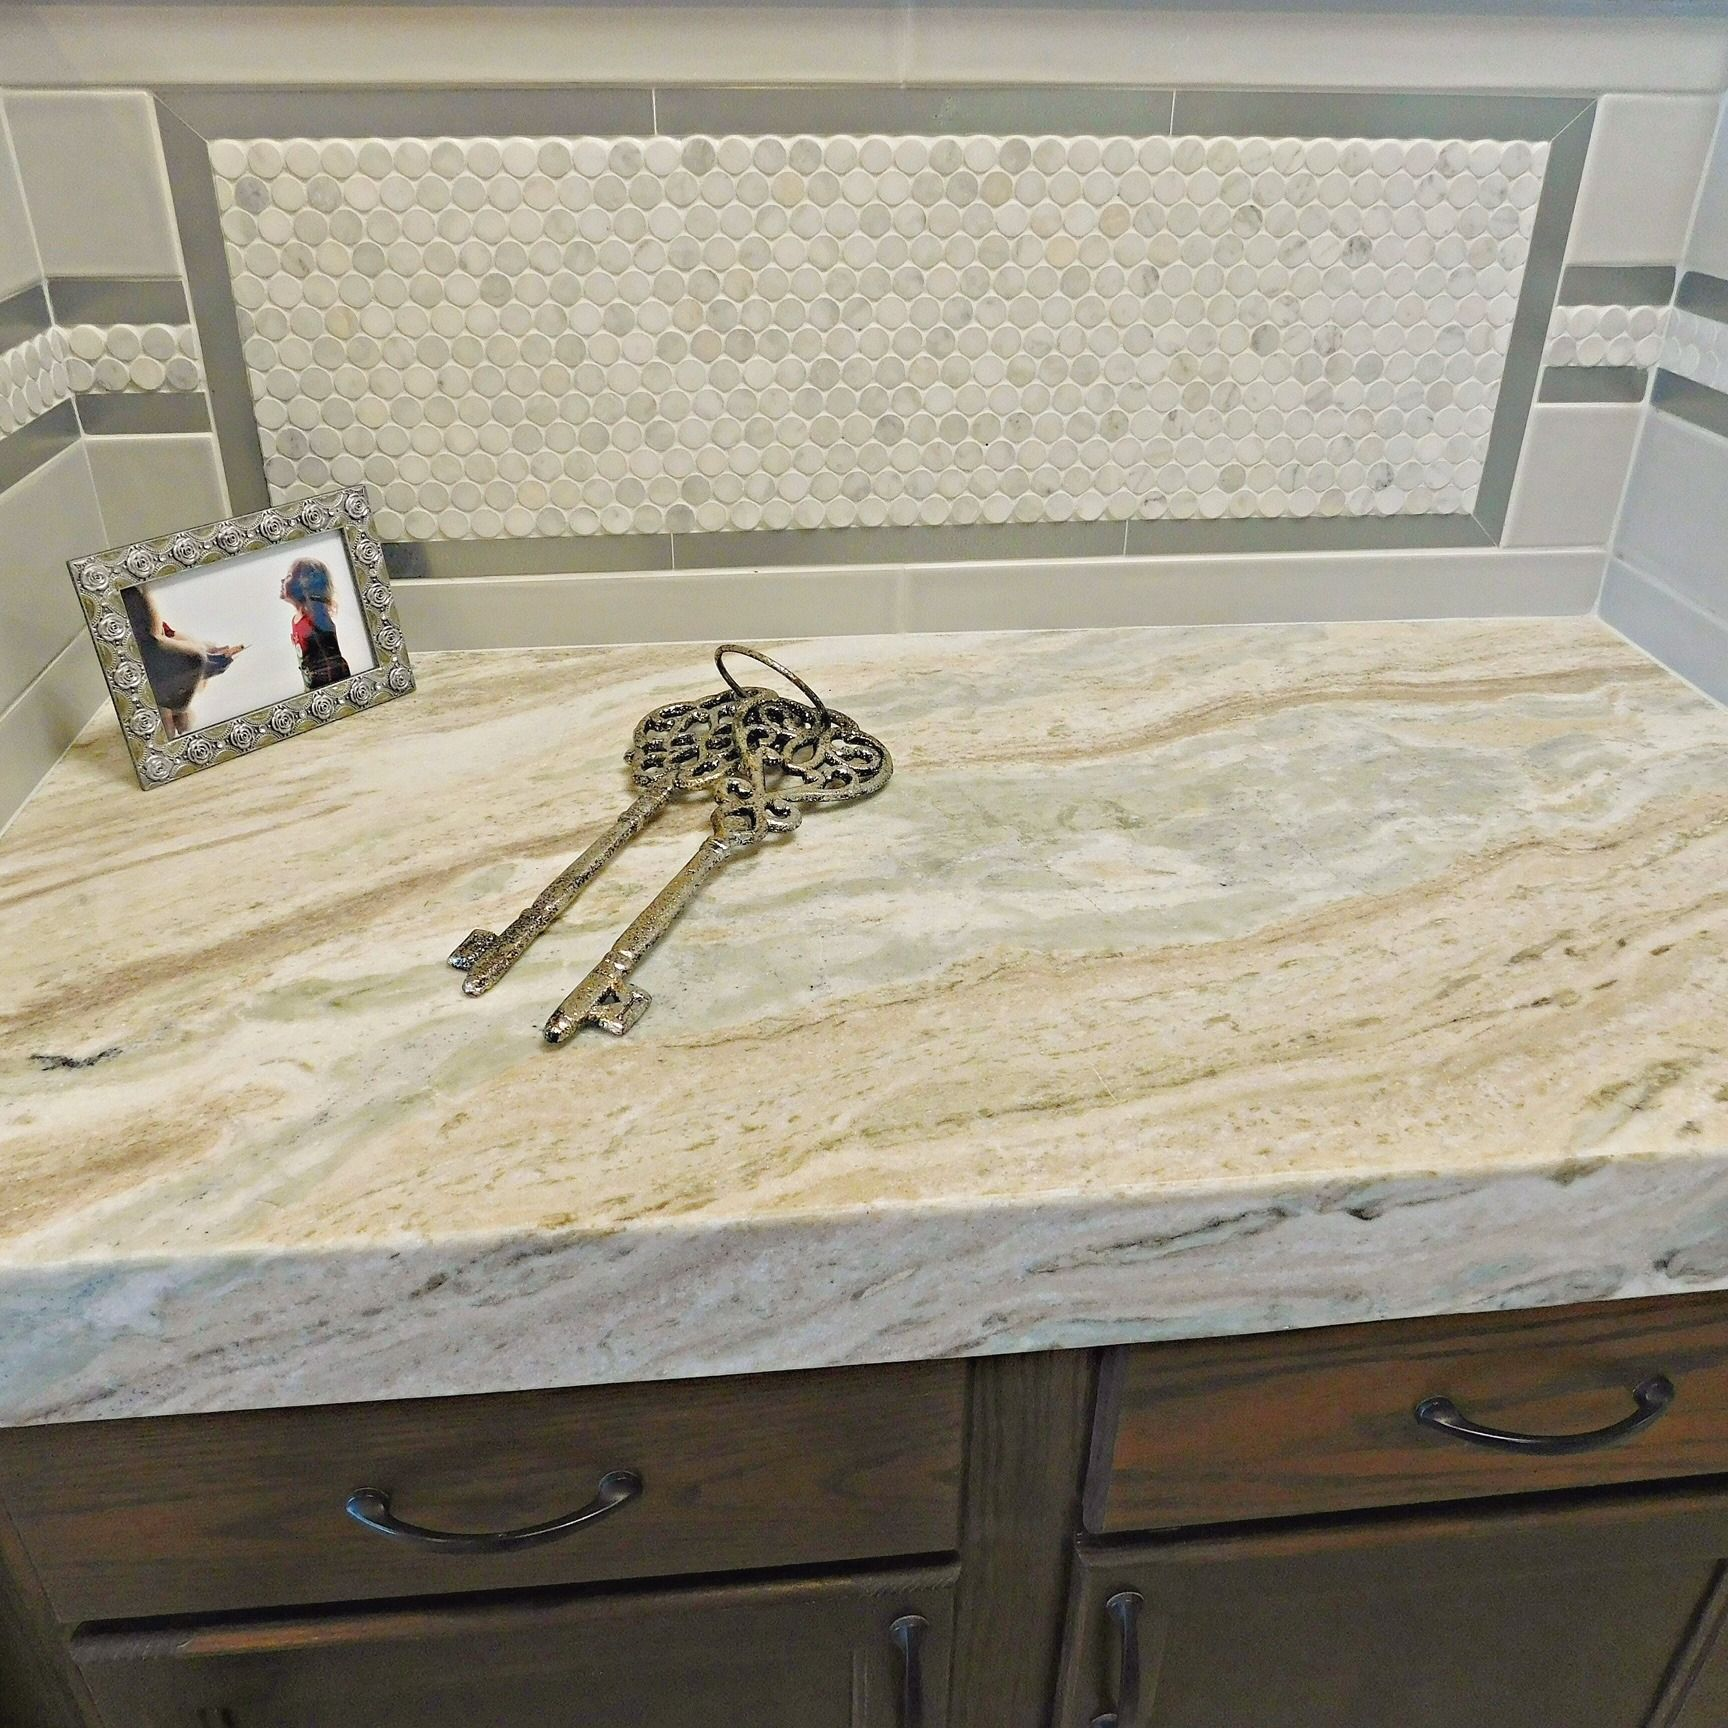 Fantasy Brown Leathered Kitchen Leather Granite Fantasy Brown Brown Granite Countertops